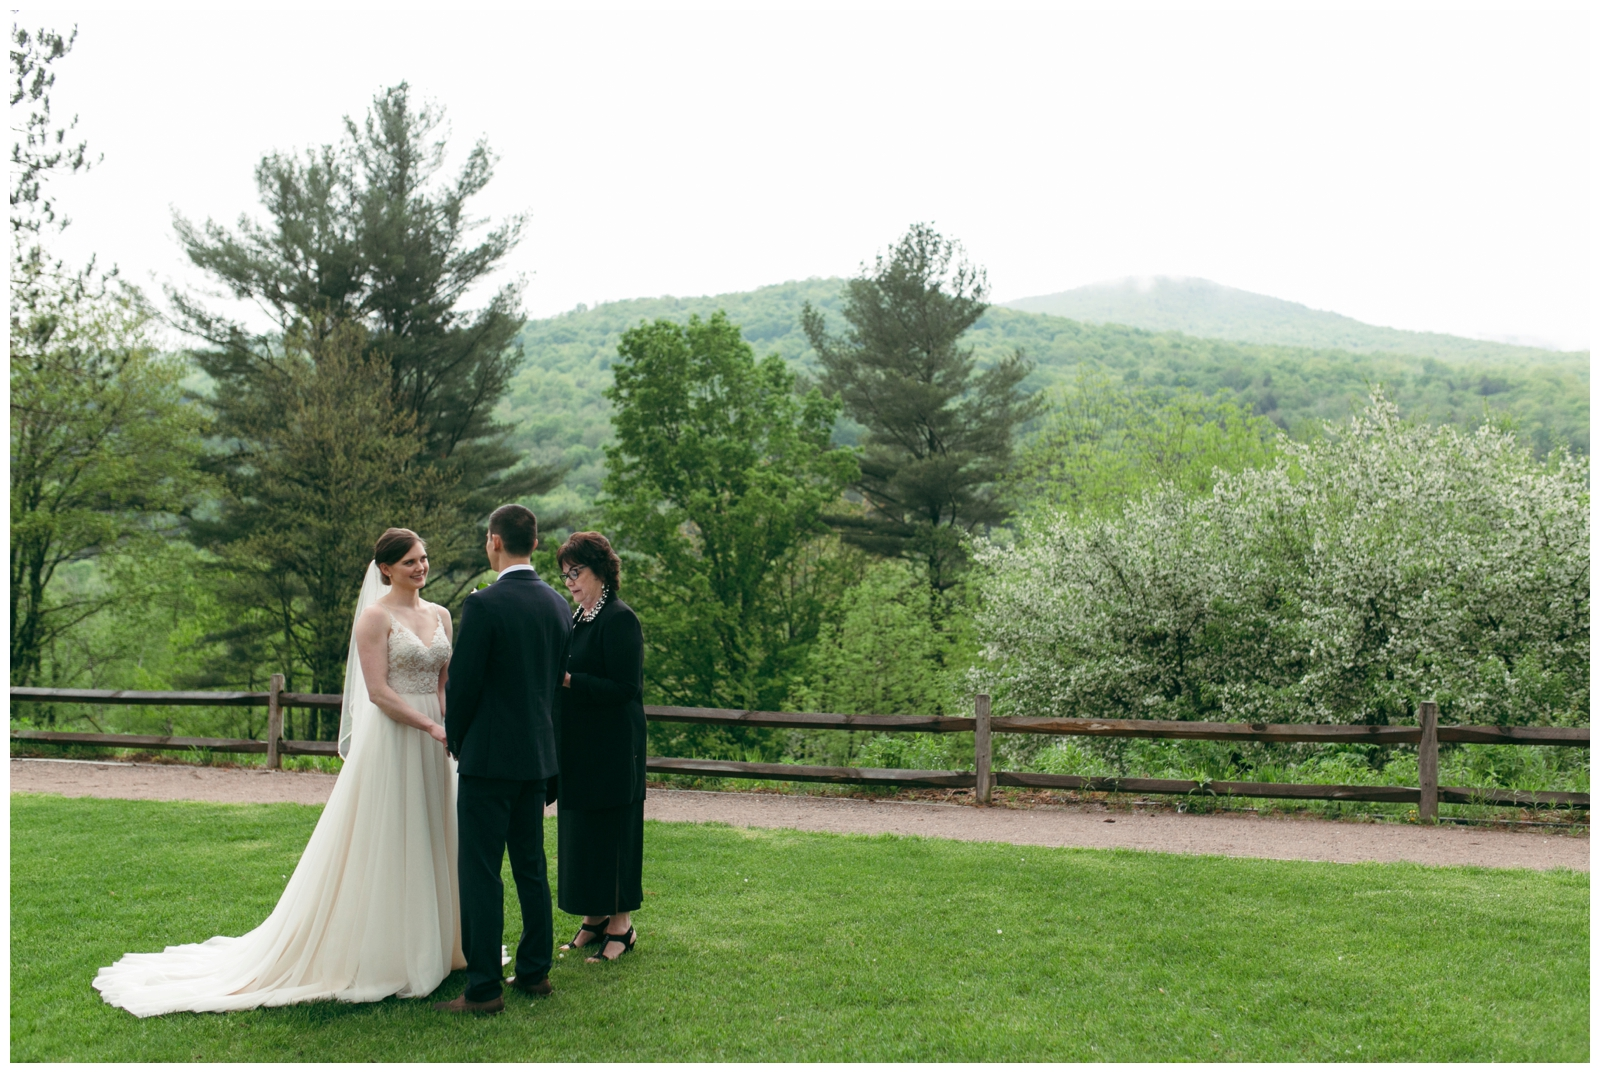 Vermont-Elopement-Topnotch-Stowe-Wedding-Bailey-Q-Photo-Boston-Wedding-Photographer-038.jpg